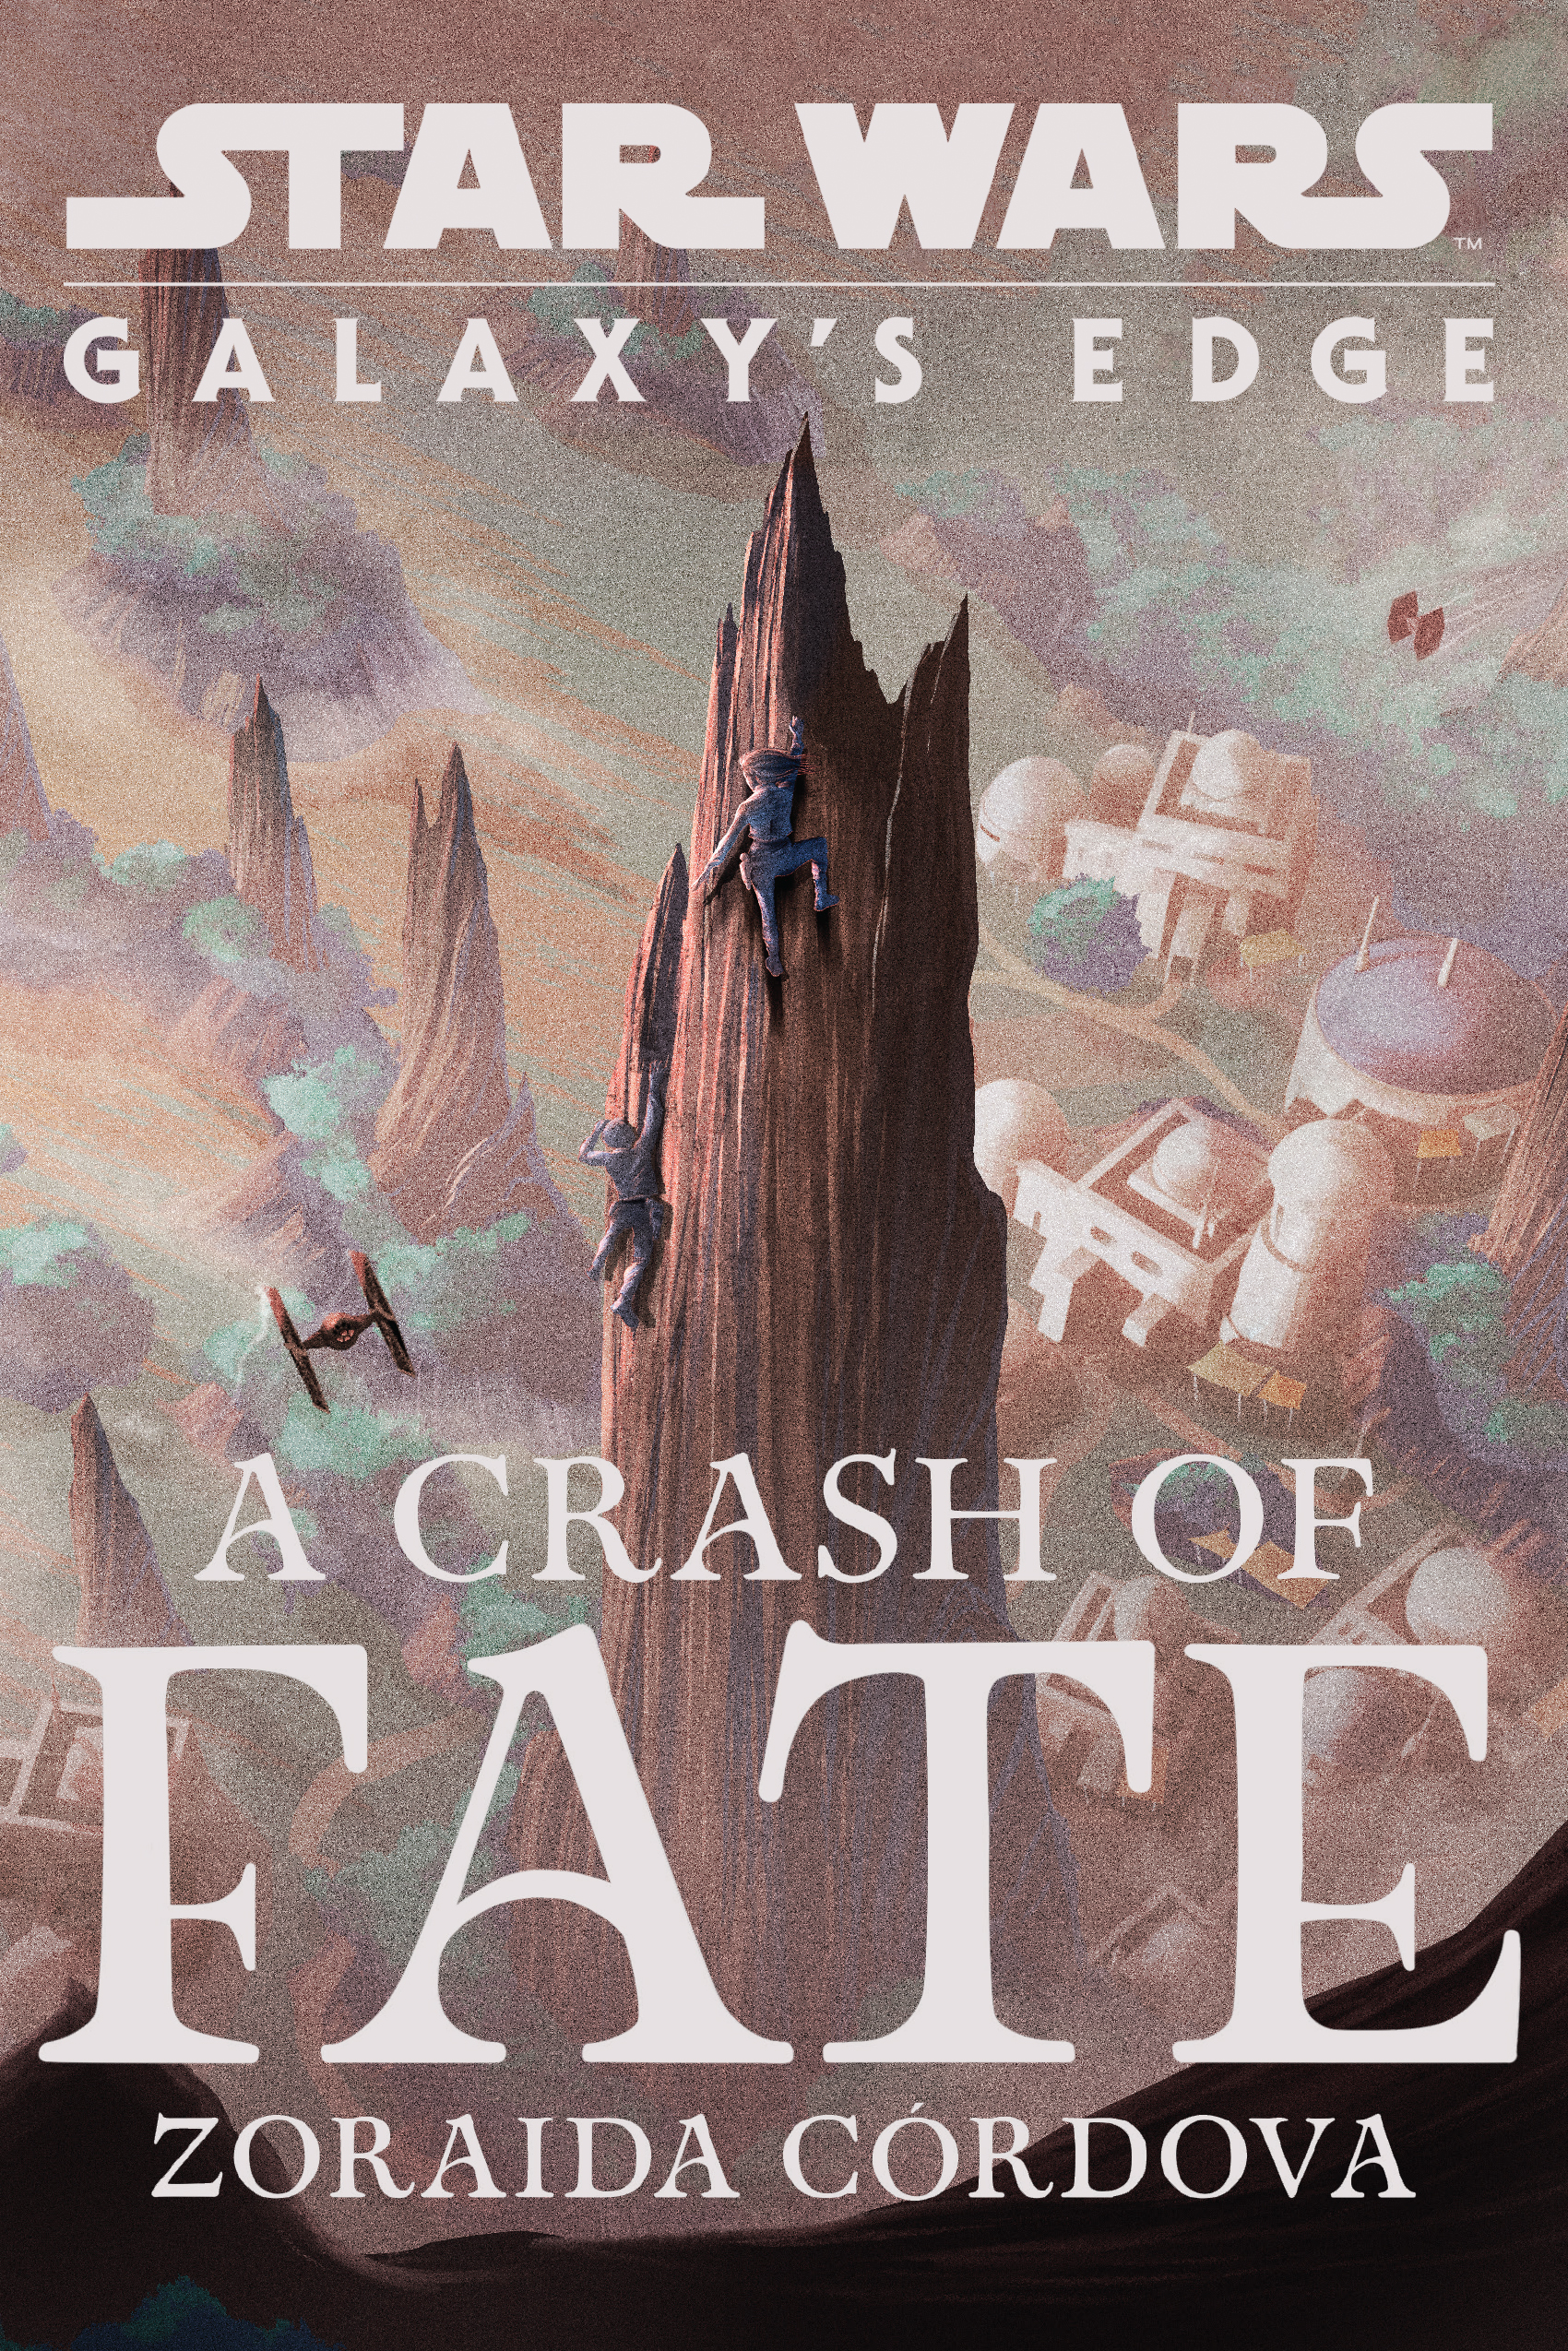 Blog Tour: A Crash of Fate by Zoraida Cordova (Excerpt + Giveaway!)